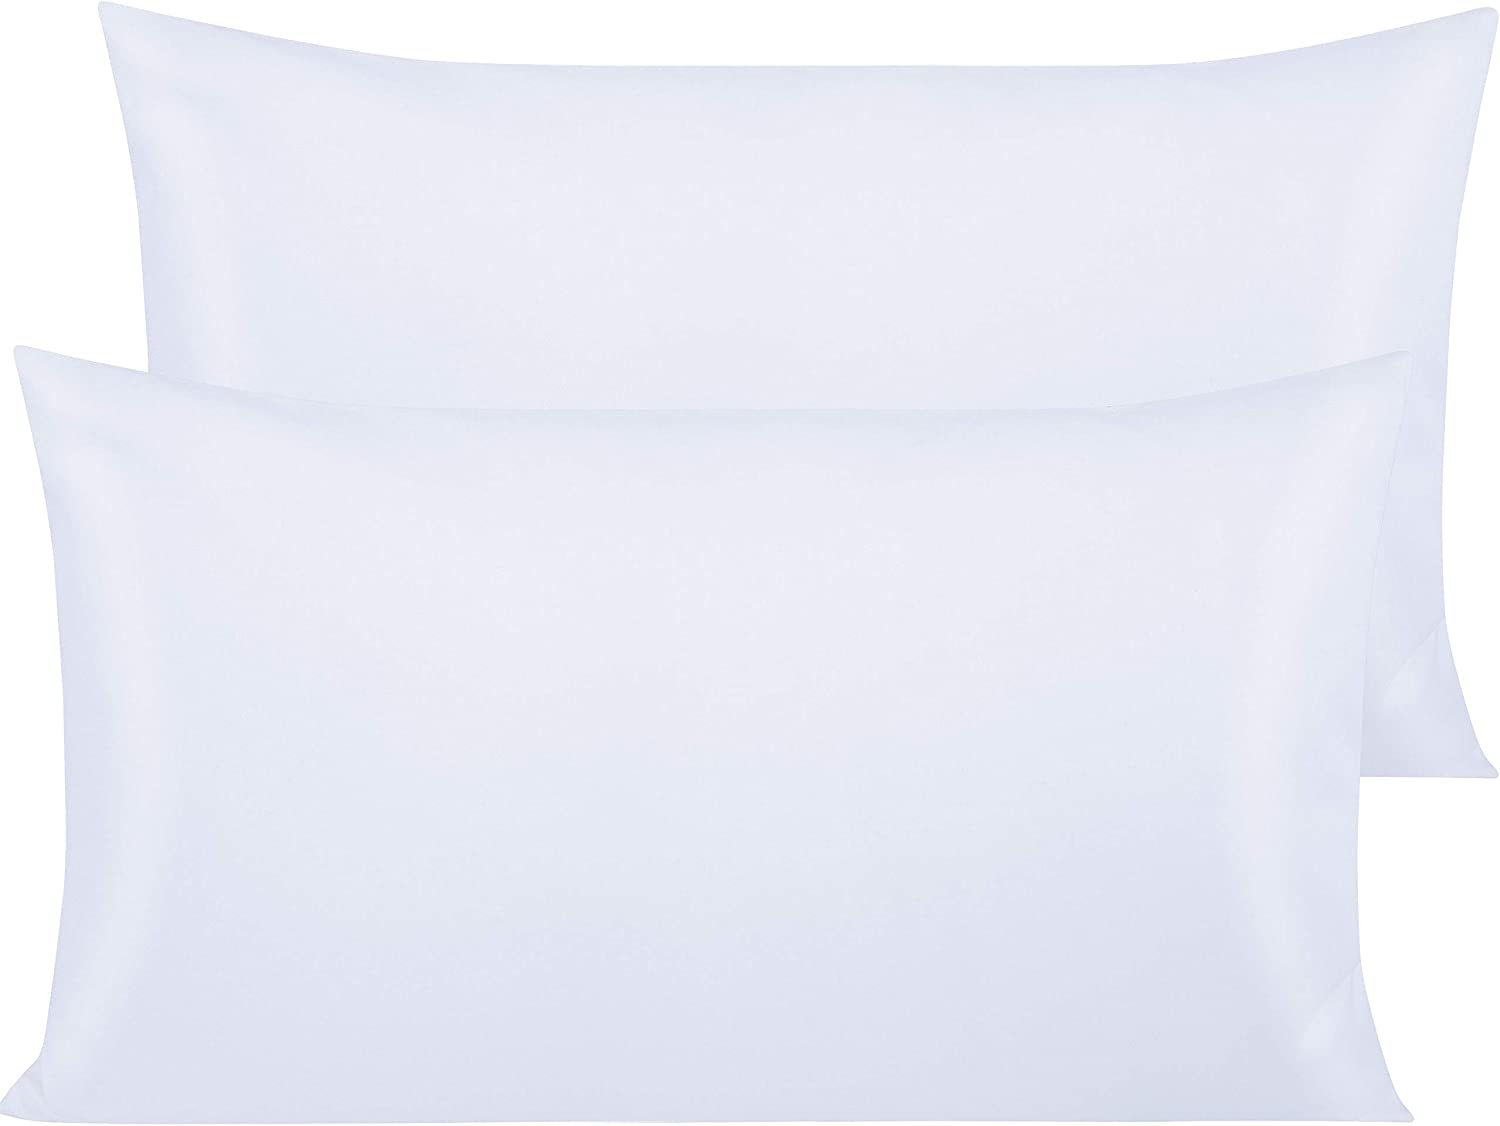 NTBAY 500 Thread Count Cotton King Pillowcases, Super Soft and Breathable Envelope Closure Pillow Cases, 20 x 36 Inches, White